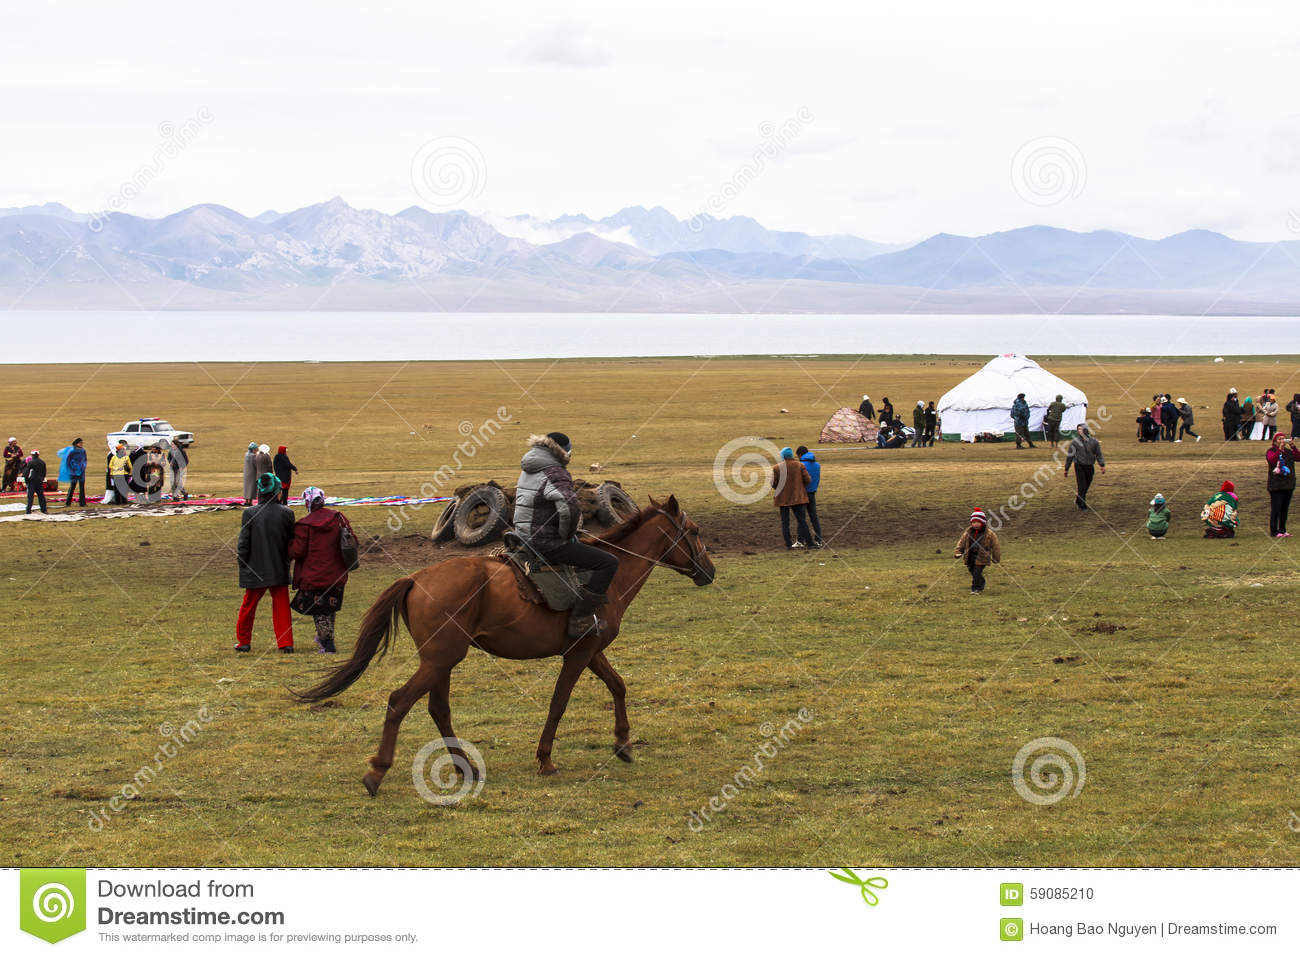 Horse Riding in Song kul Lake in Kyrgyzstan